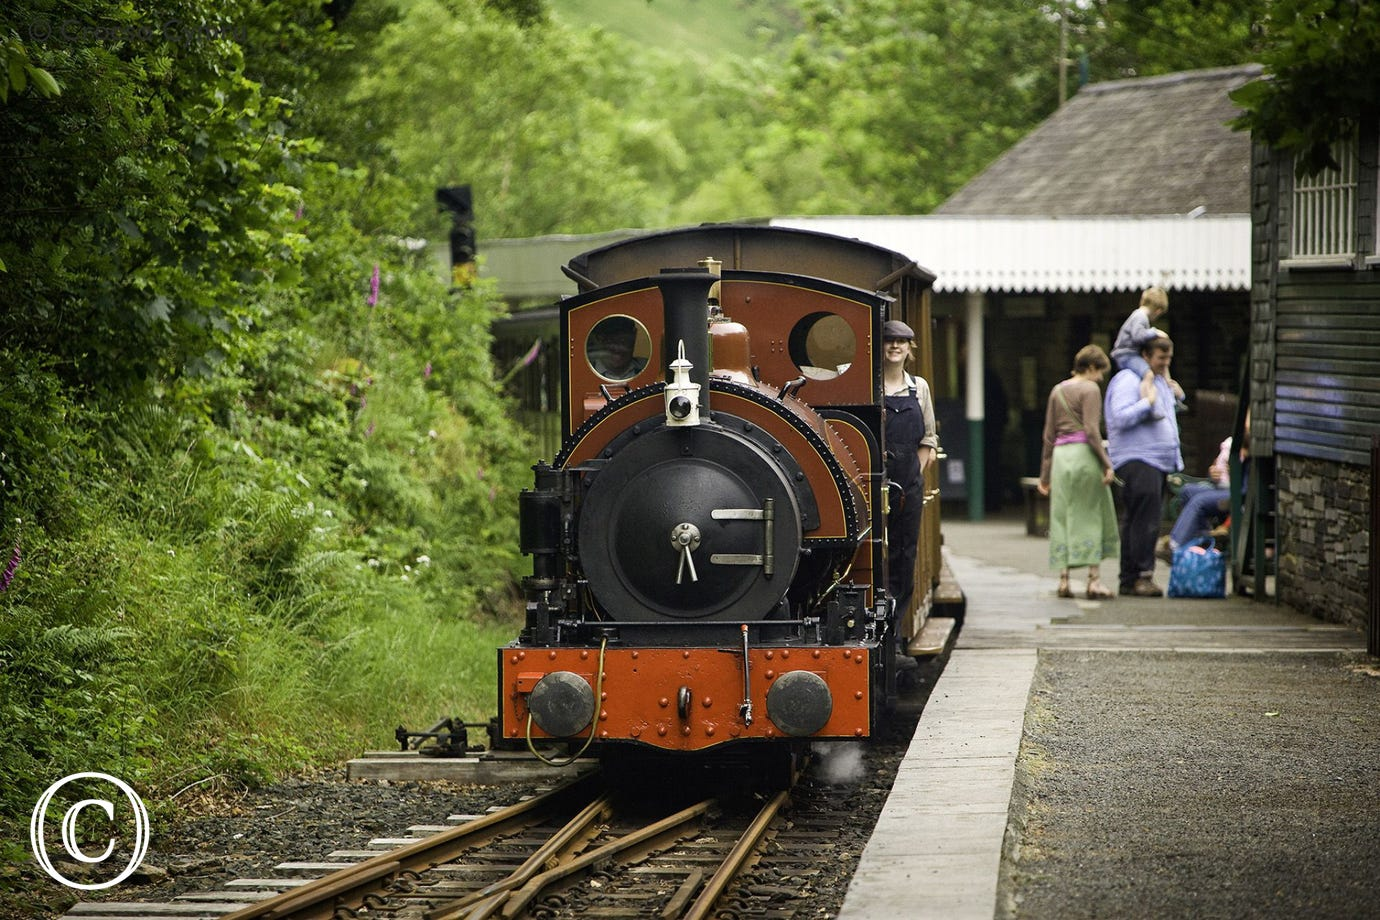 Tal-y-llyn Narrow Gauge Railway for a relaxing and scenic experience